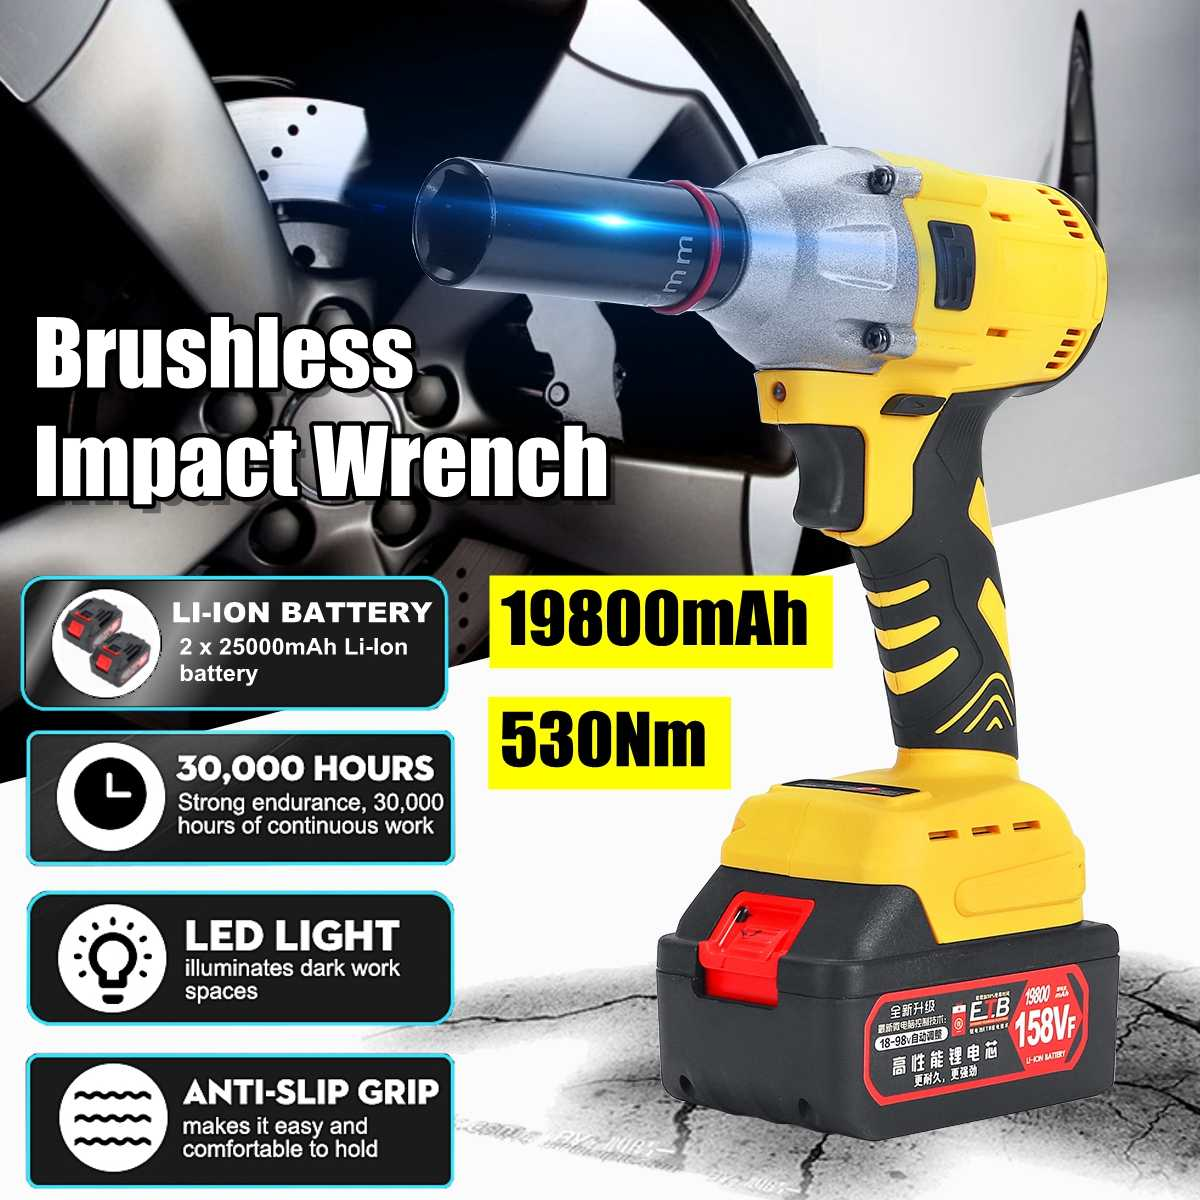 158VF 530Nm 19800mah 1/2'' Cordless Impact Wrench Power Driver Electric Wrench Socket 2 x battery 1/2 Socket Wrench Power Tool